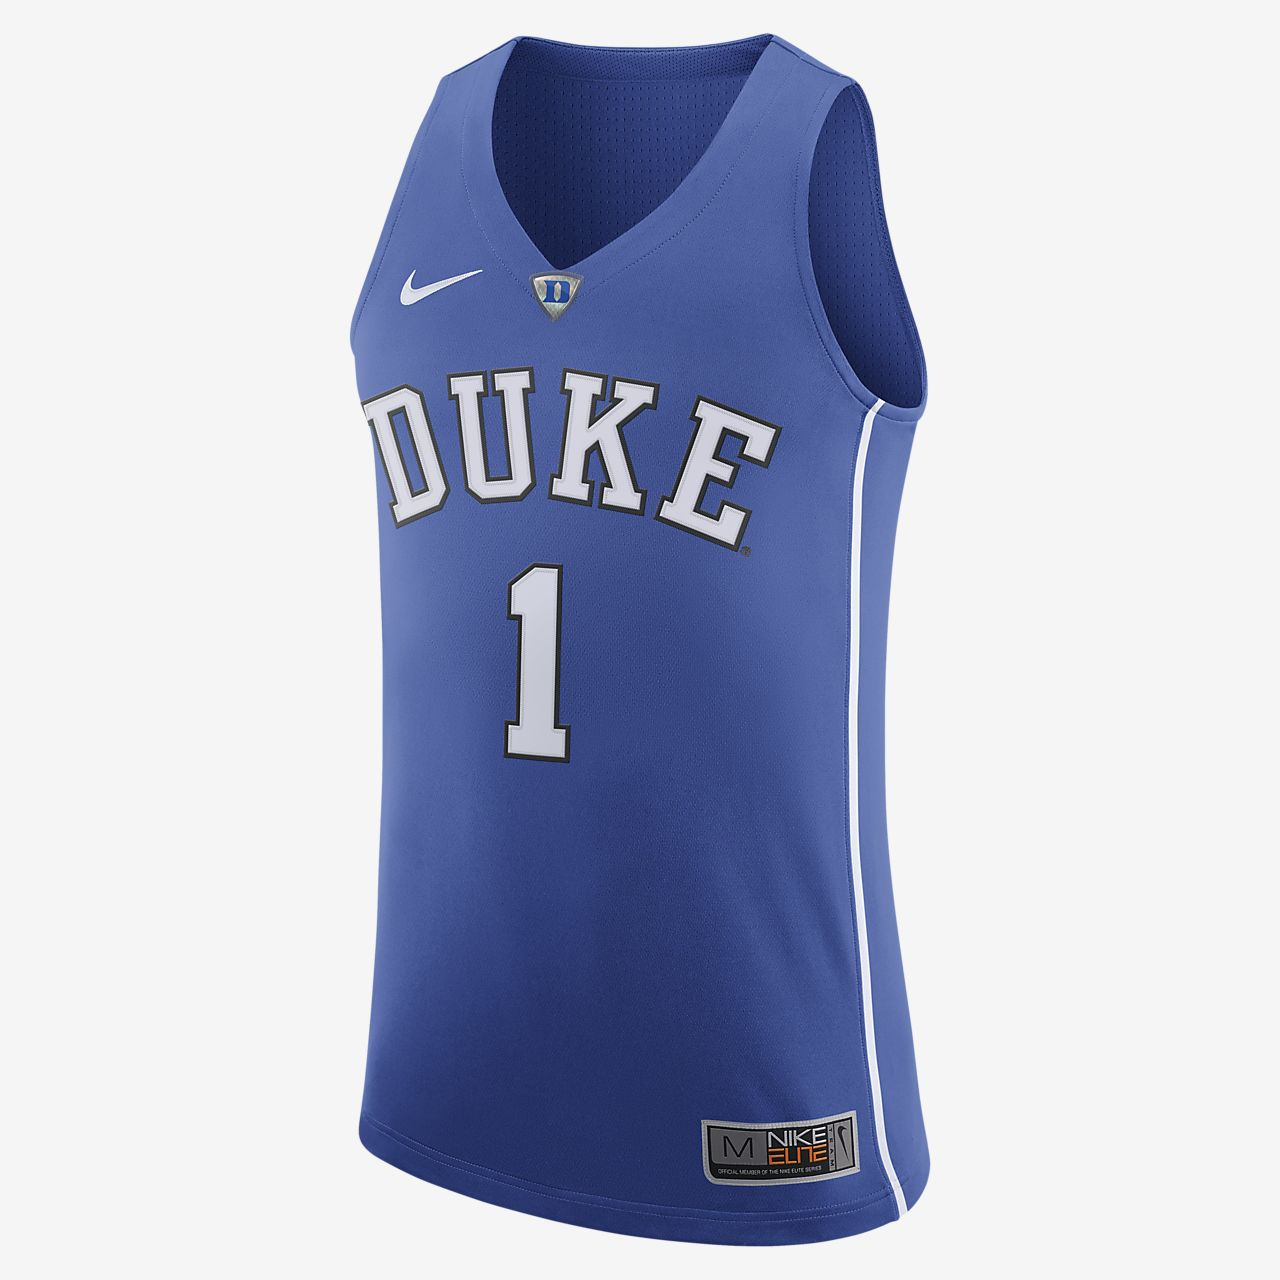 cde639af0 Nike College Authentic (Duke) Men s Basketball Jersey. Nike.com